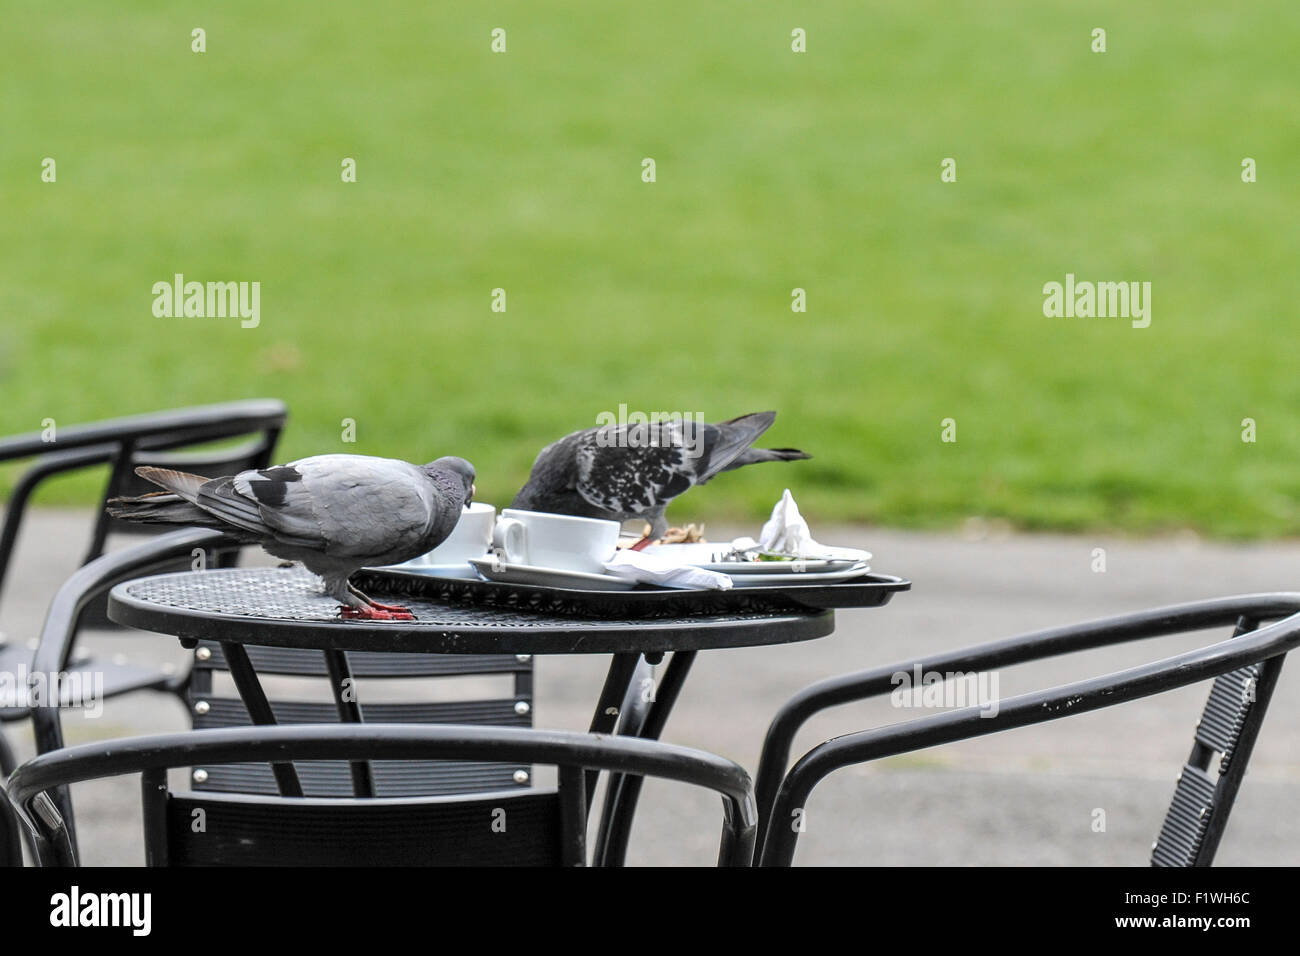 Pigeons feed on a cafe table. - Stock Image